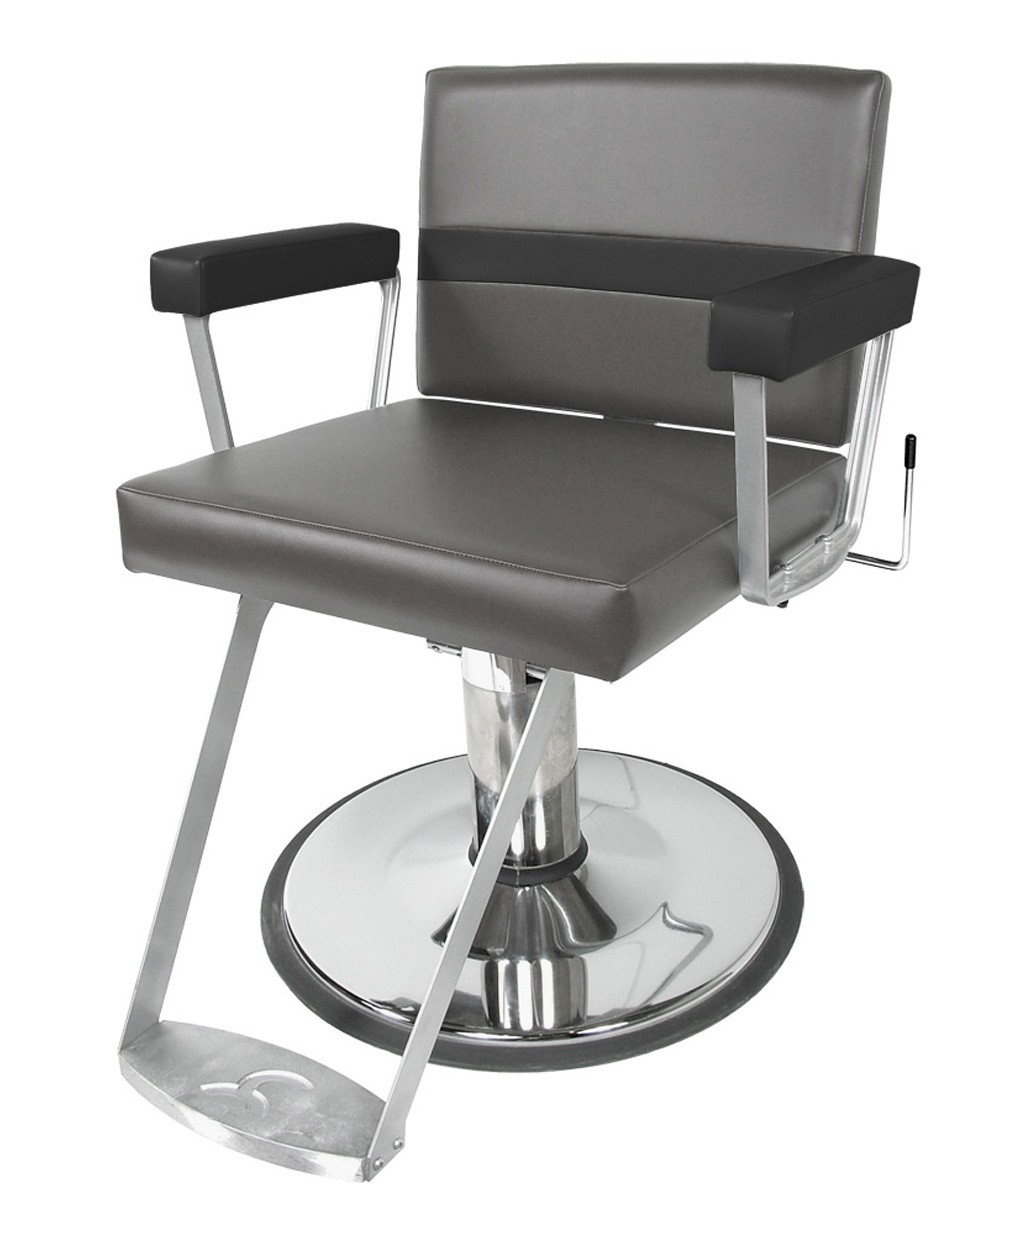 9810 Taress All Purpose Chair with Standard Base